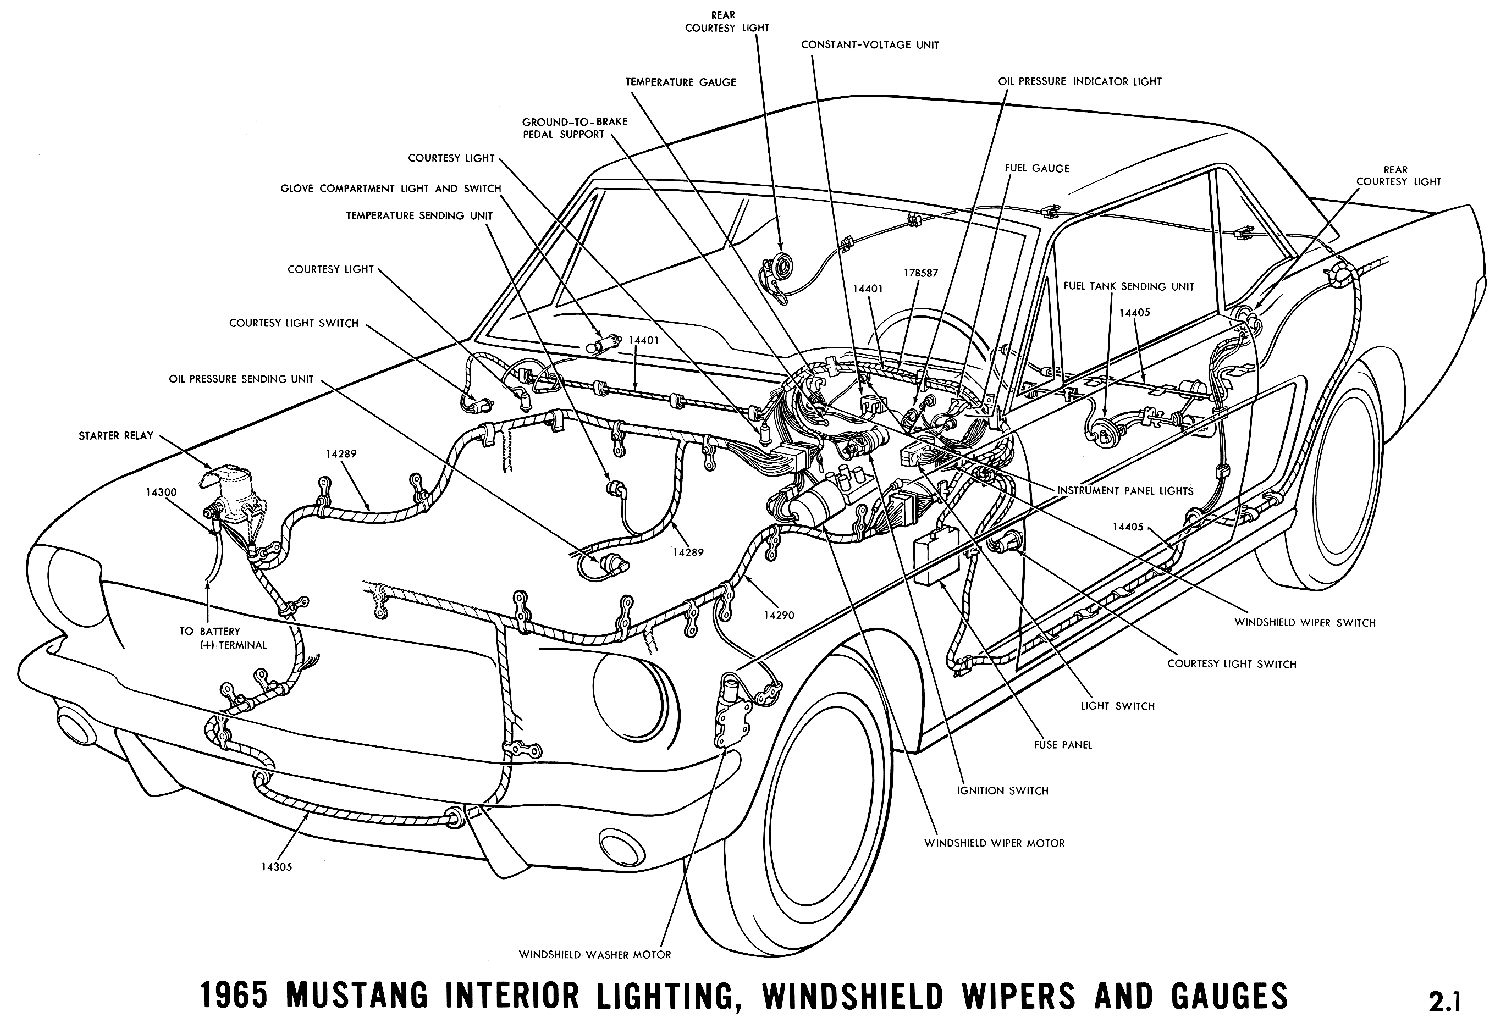 2000 Ford Mustang Fuel System Diagram Full Hd Version System Diagram Lost Diagram Kuteportal Fr